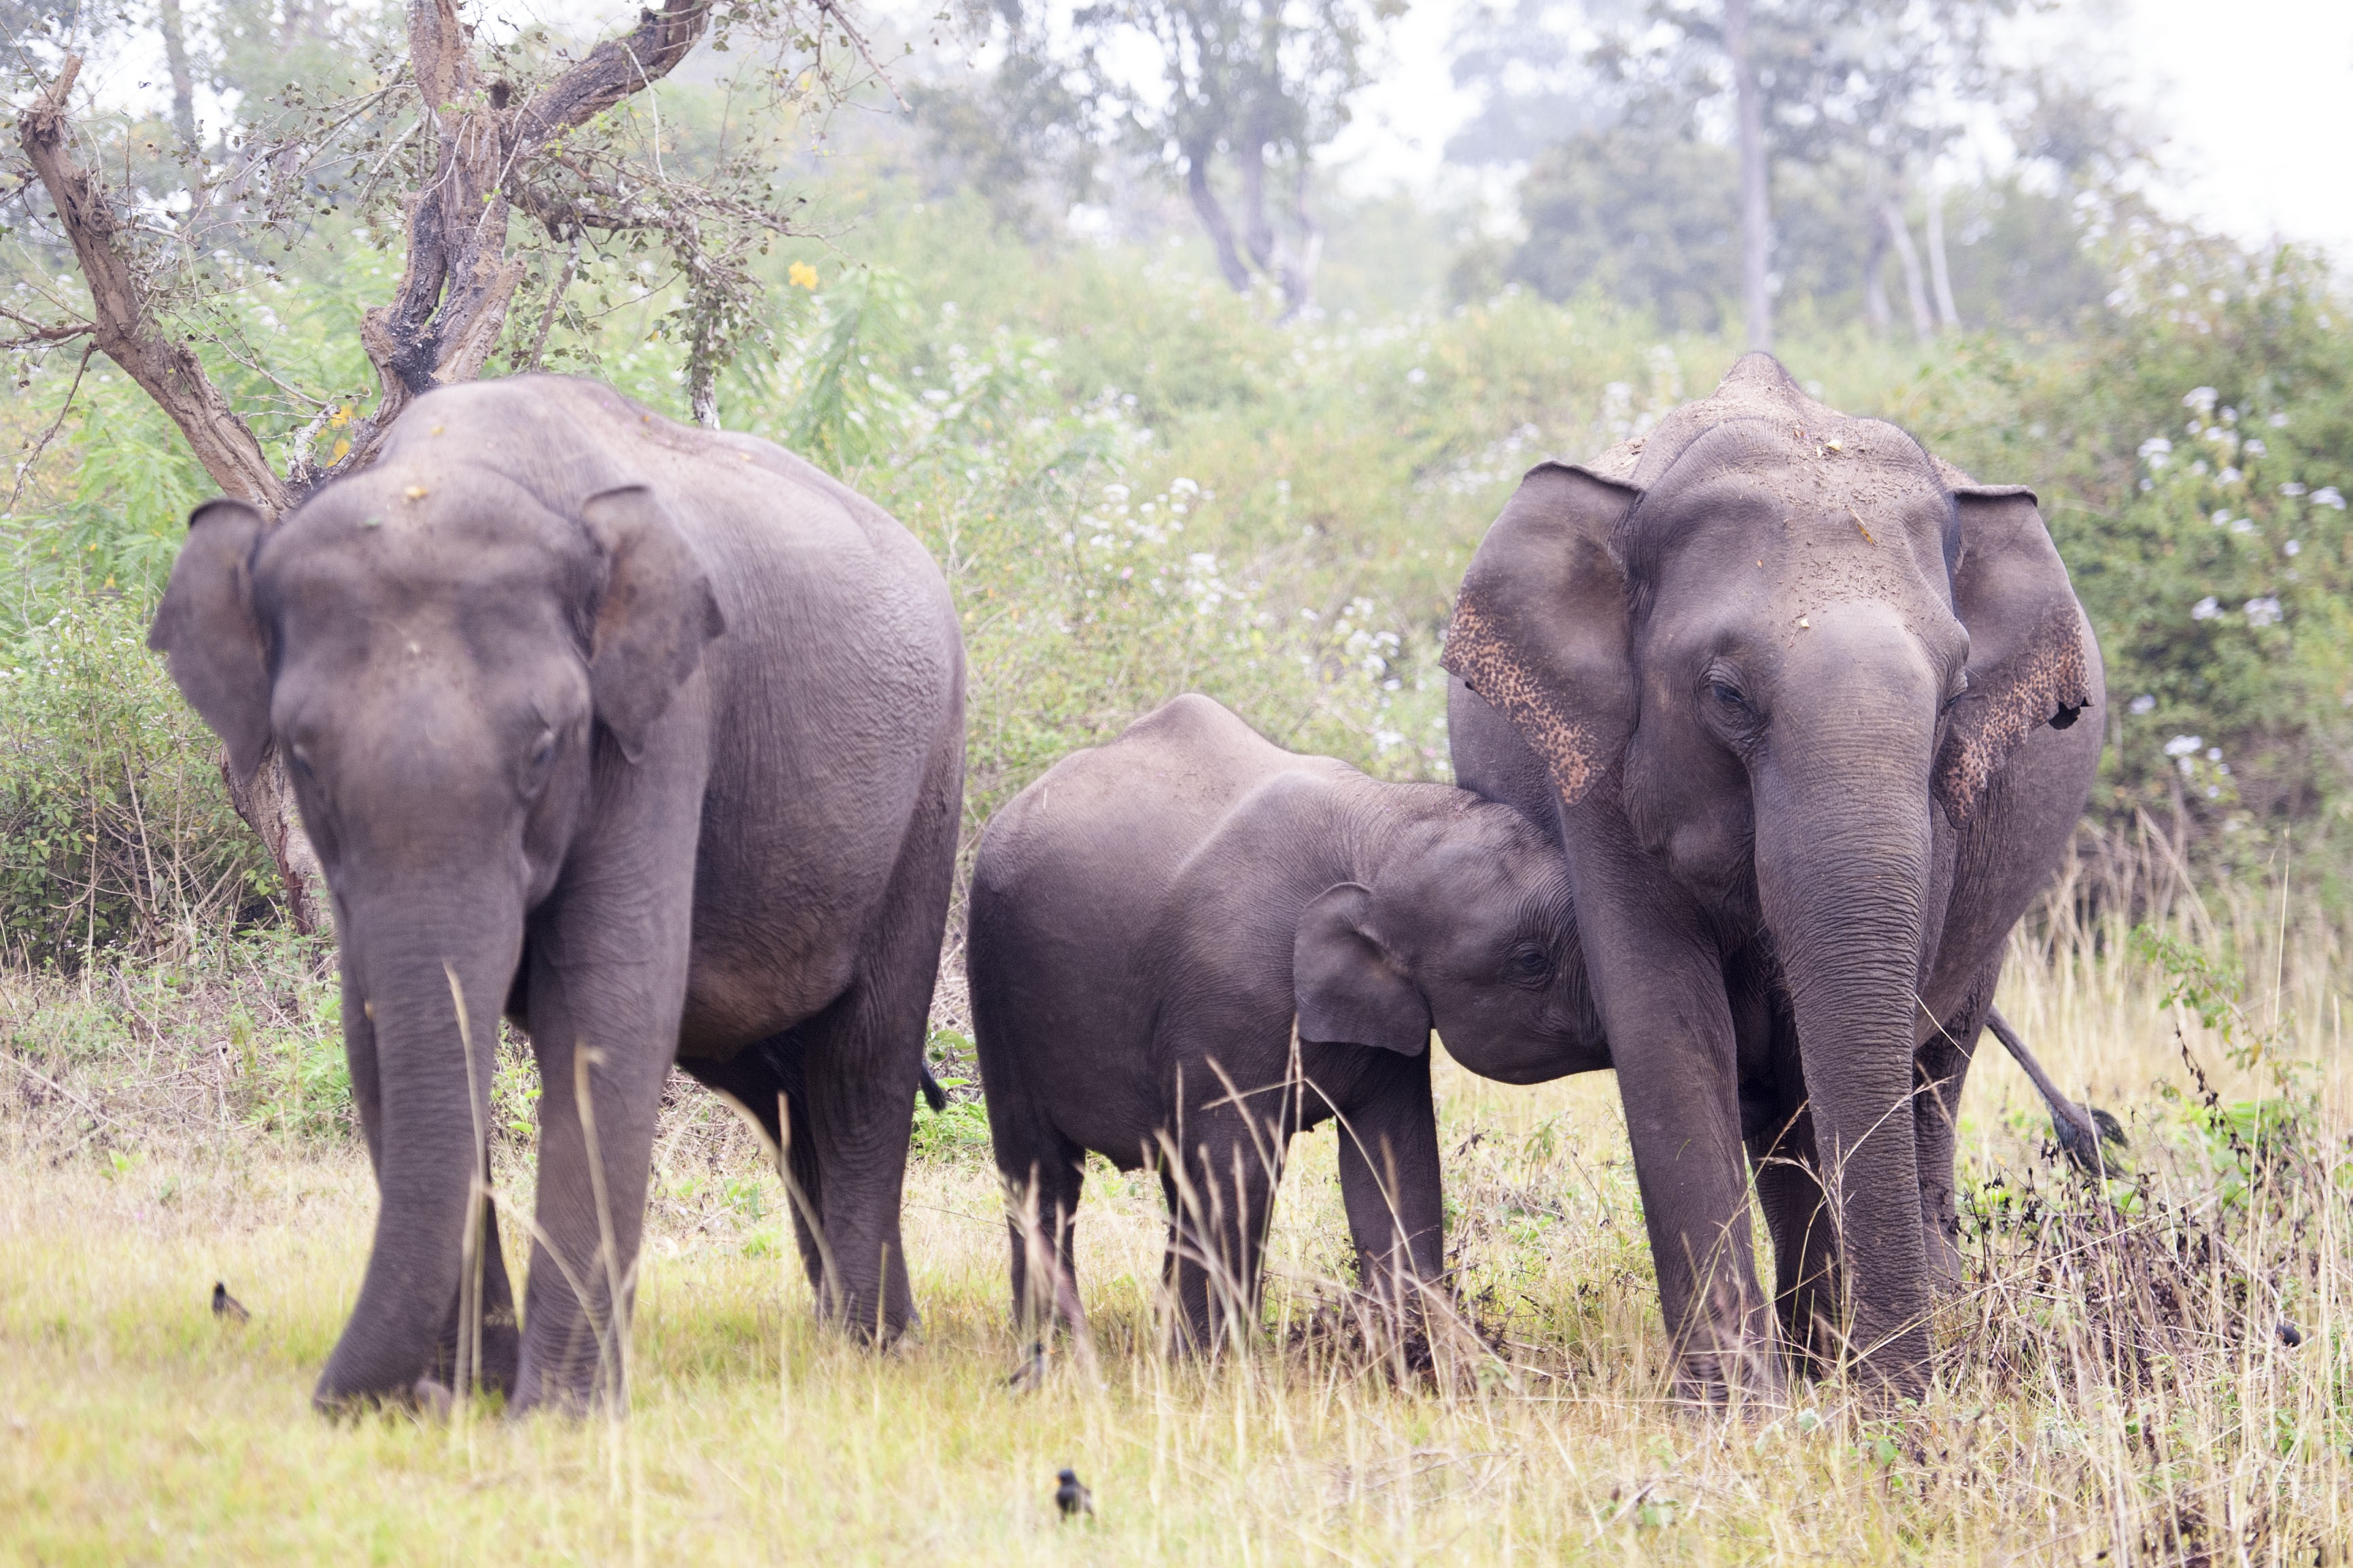 Asiatic Elephant with calf in Bandipur